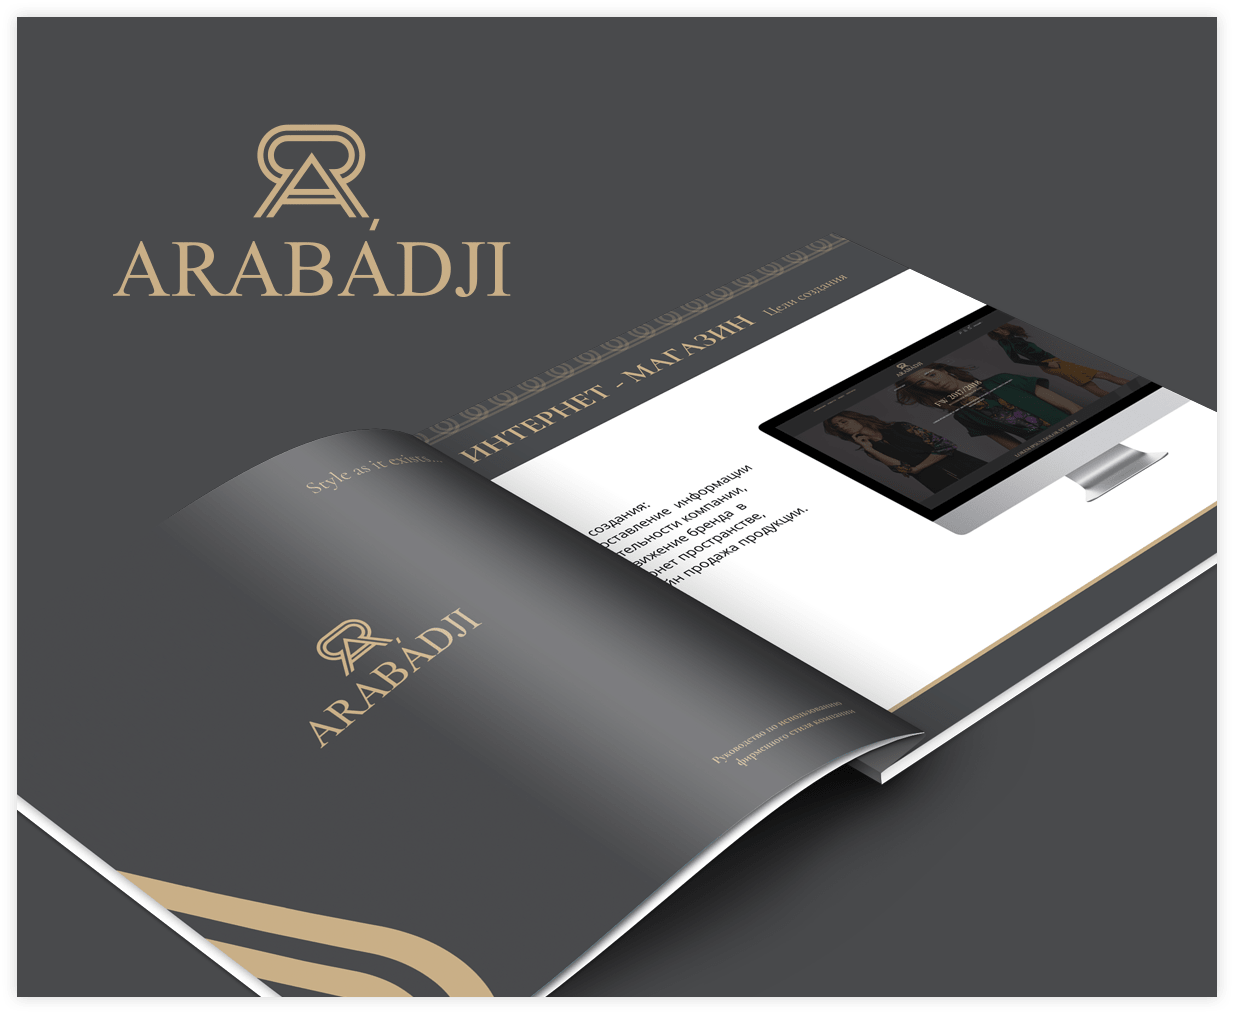 Developing a corporate identity for Arabadji